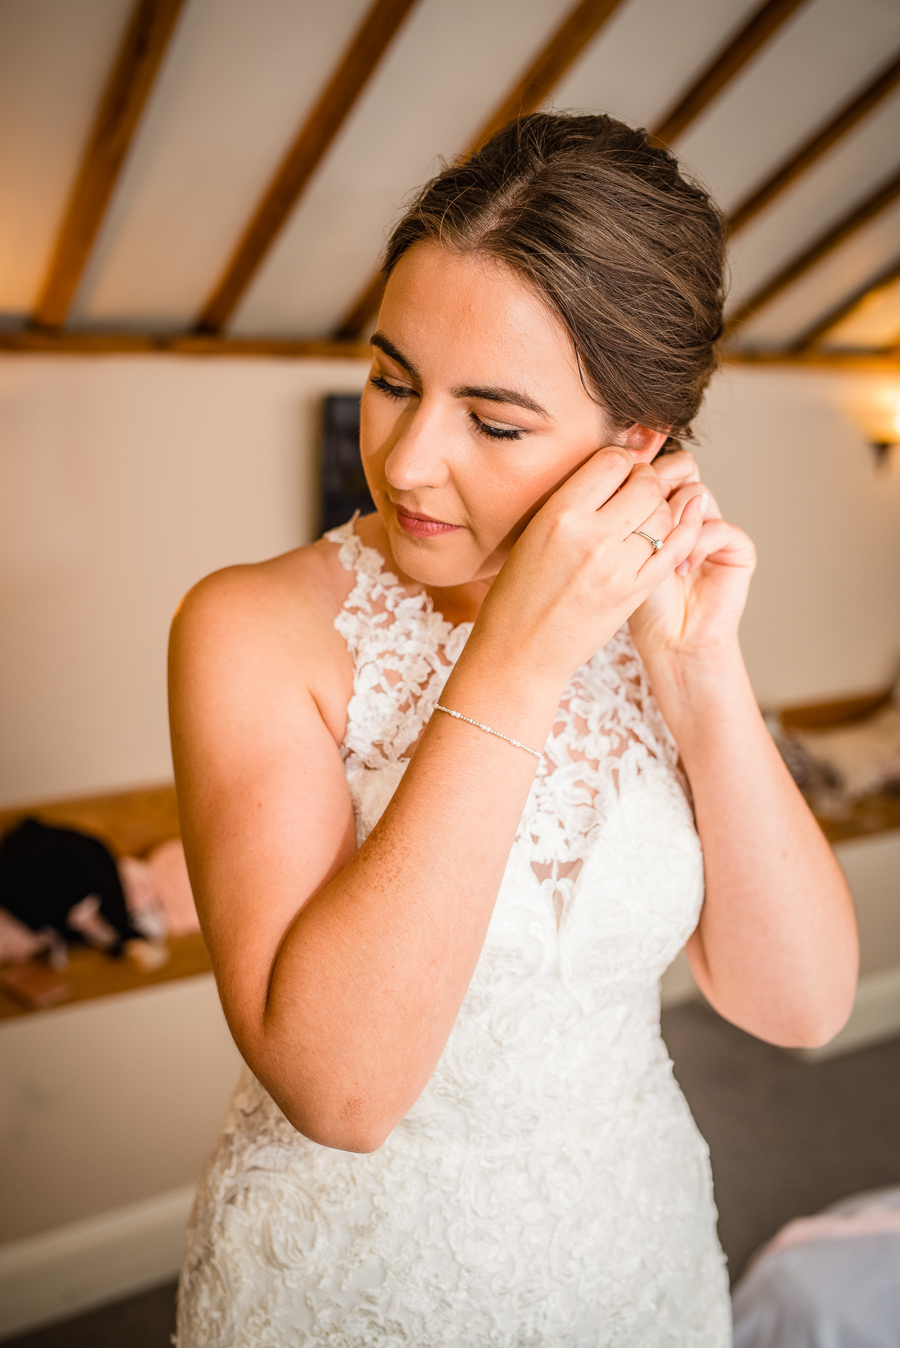 Tom & Alex's creative South Downs wedding, with GK Photography (4)